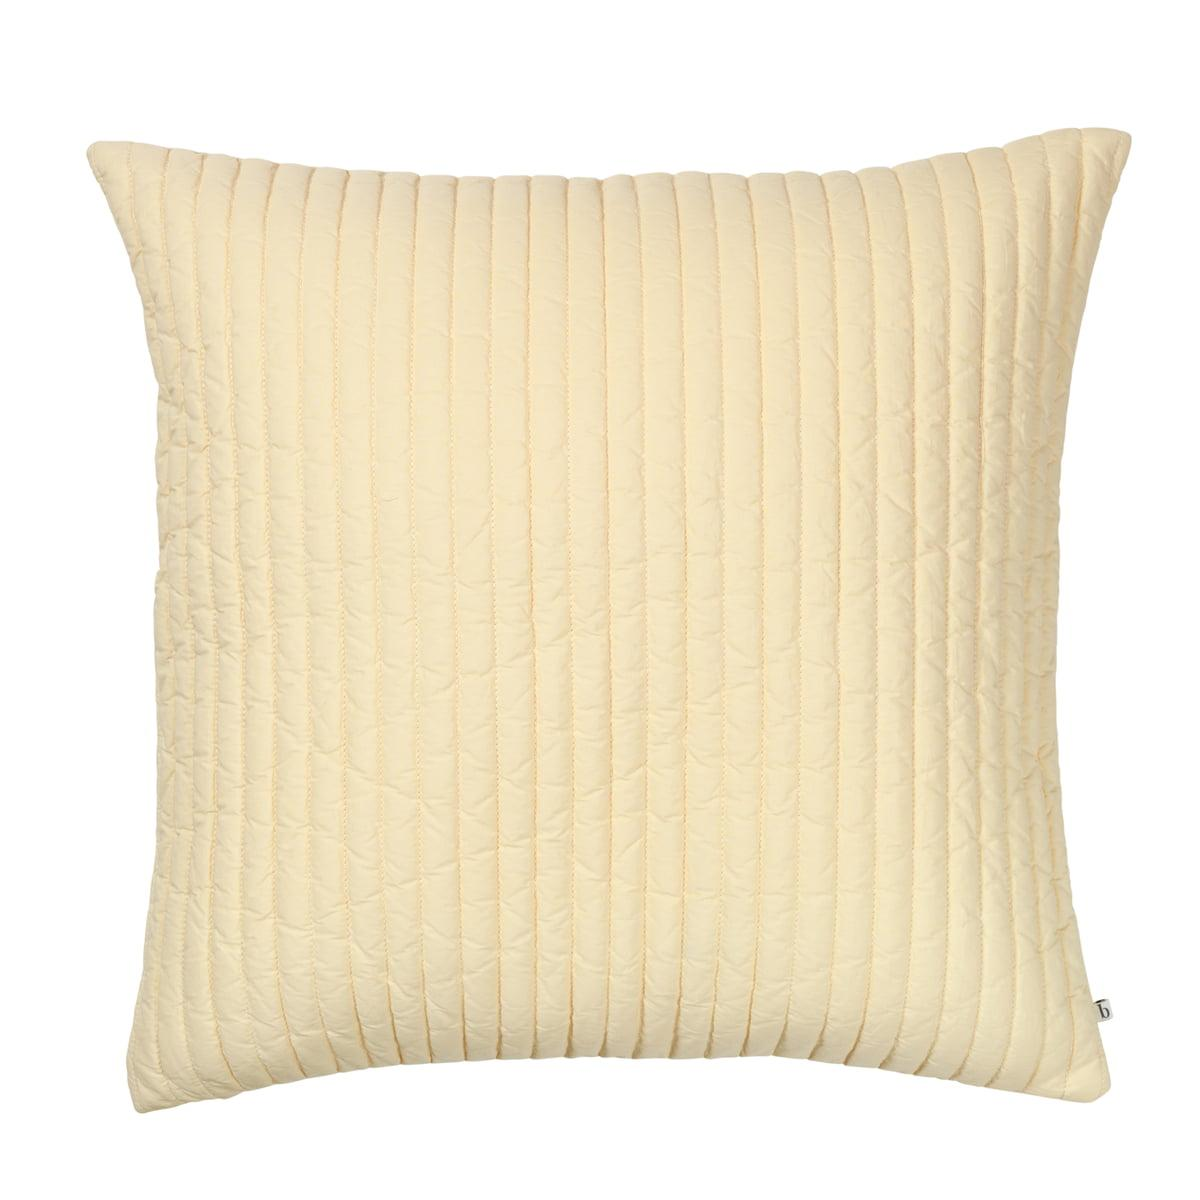 Broste Copenhagen - Sena Kissenbezug, 60 x 60 cm, golden fleece